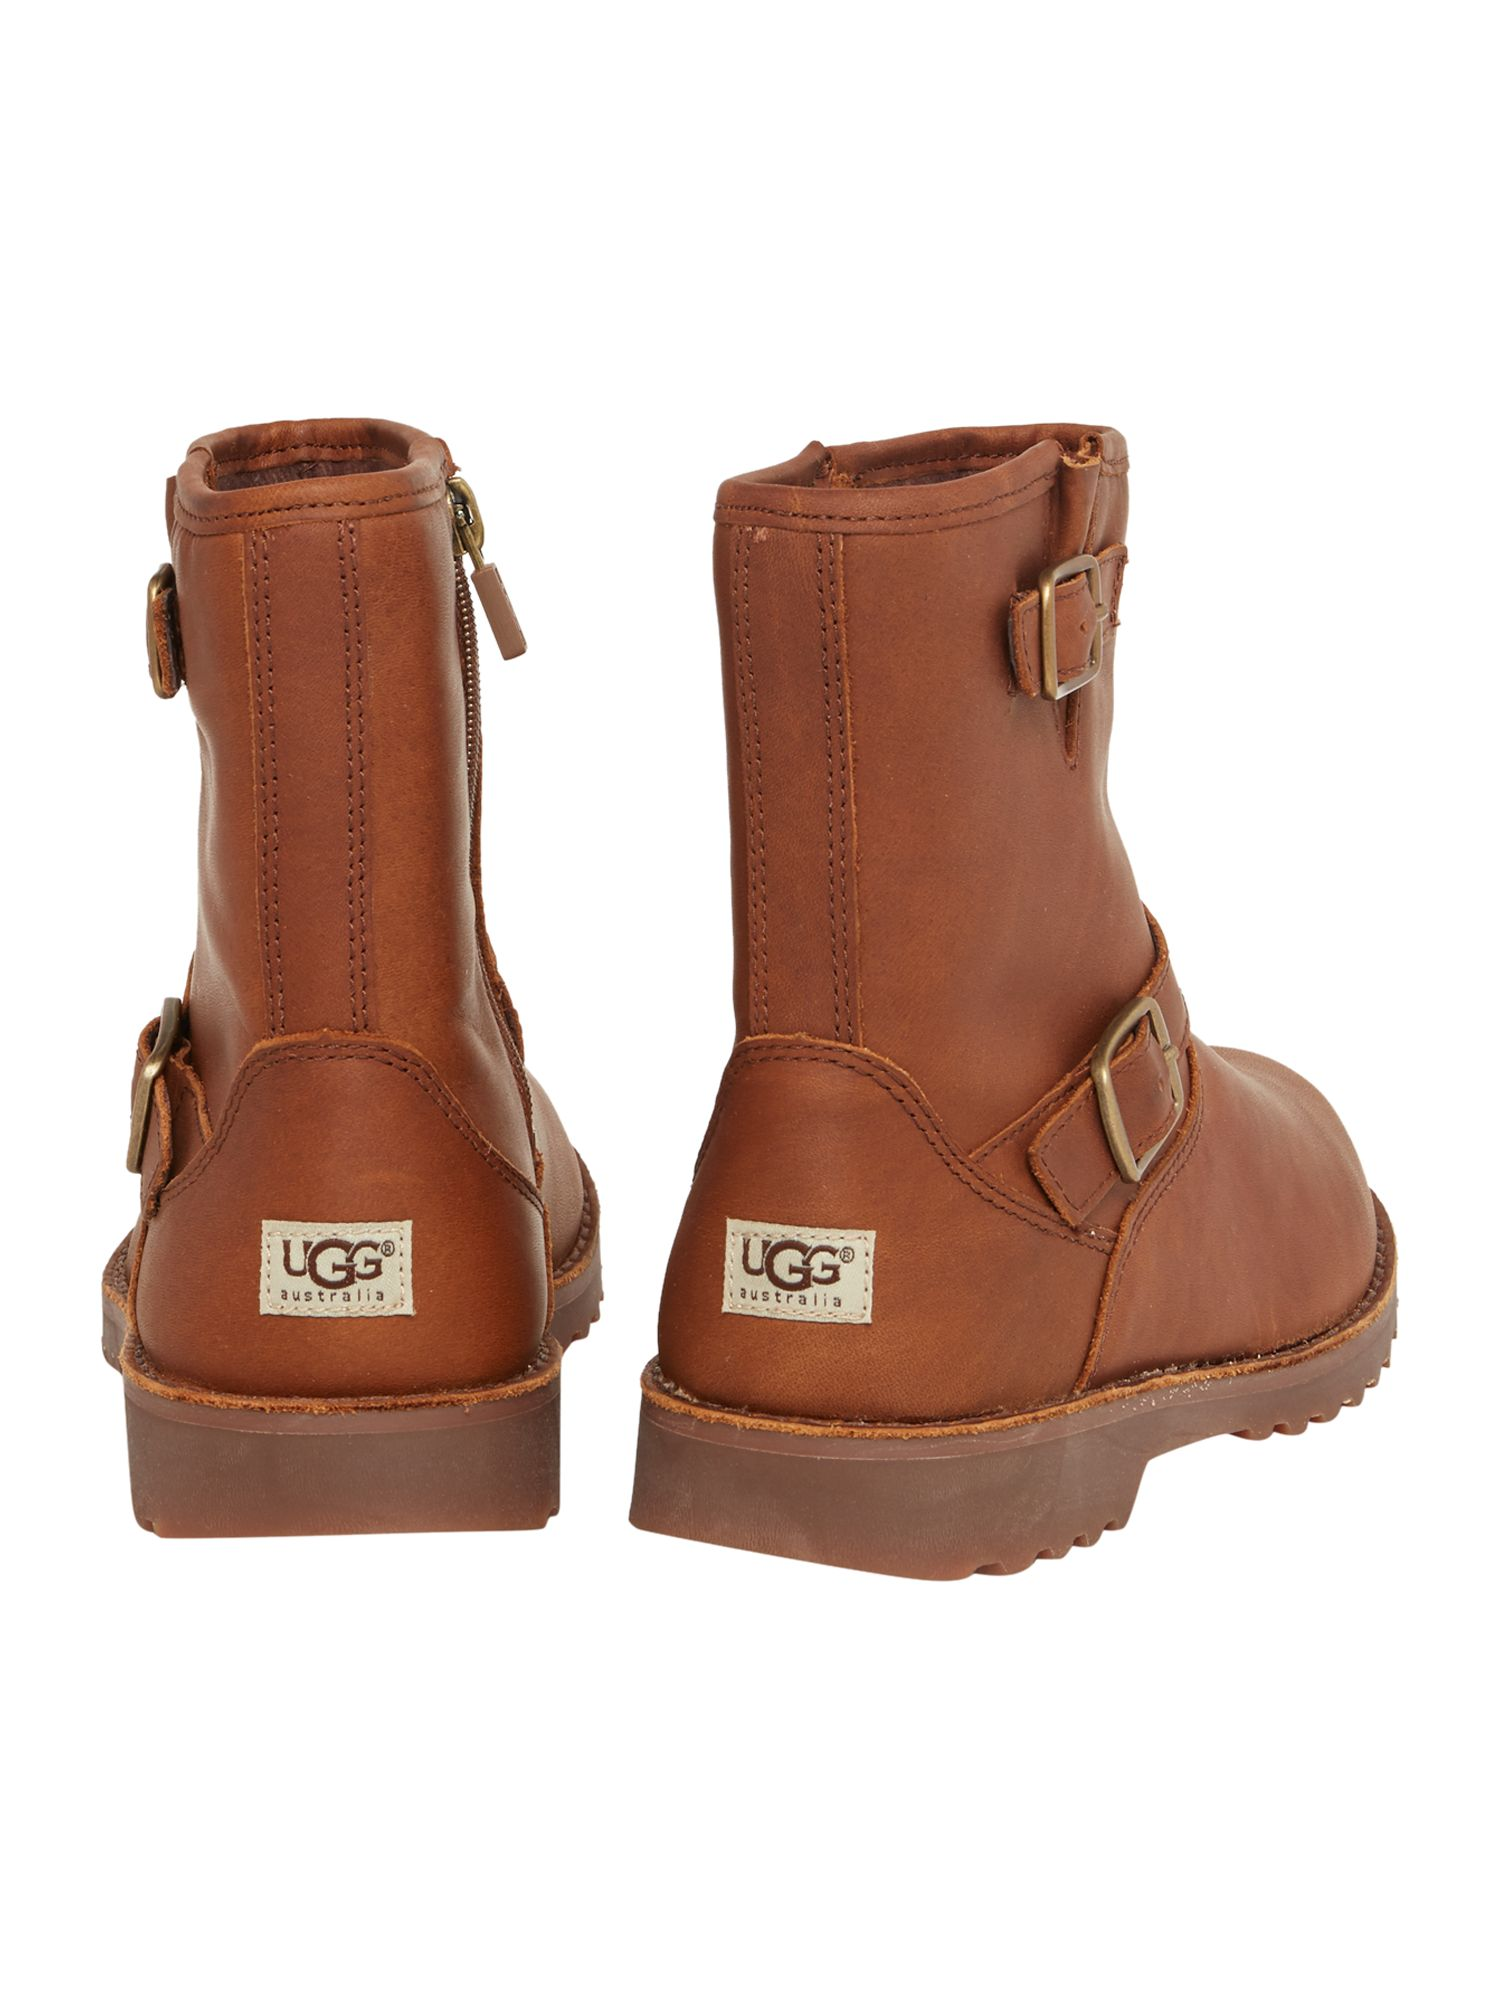 Brave the outdoors in UGG boots that can fit over or be tucked into pants or try a pair of clogs, moccasins or UGG slippers for casual, comfortable style all year round. Select between UGG's classic boots or others designed with whimsical knit uppers, fur trim, studs and unexpected prints and colors.